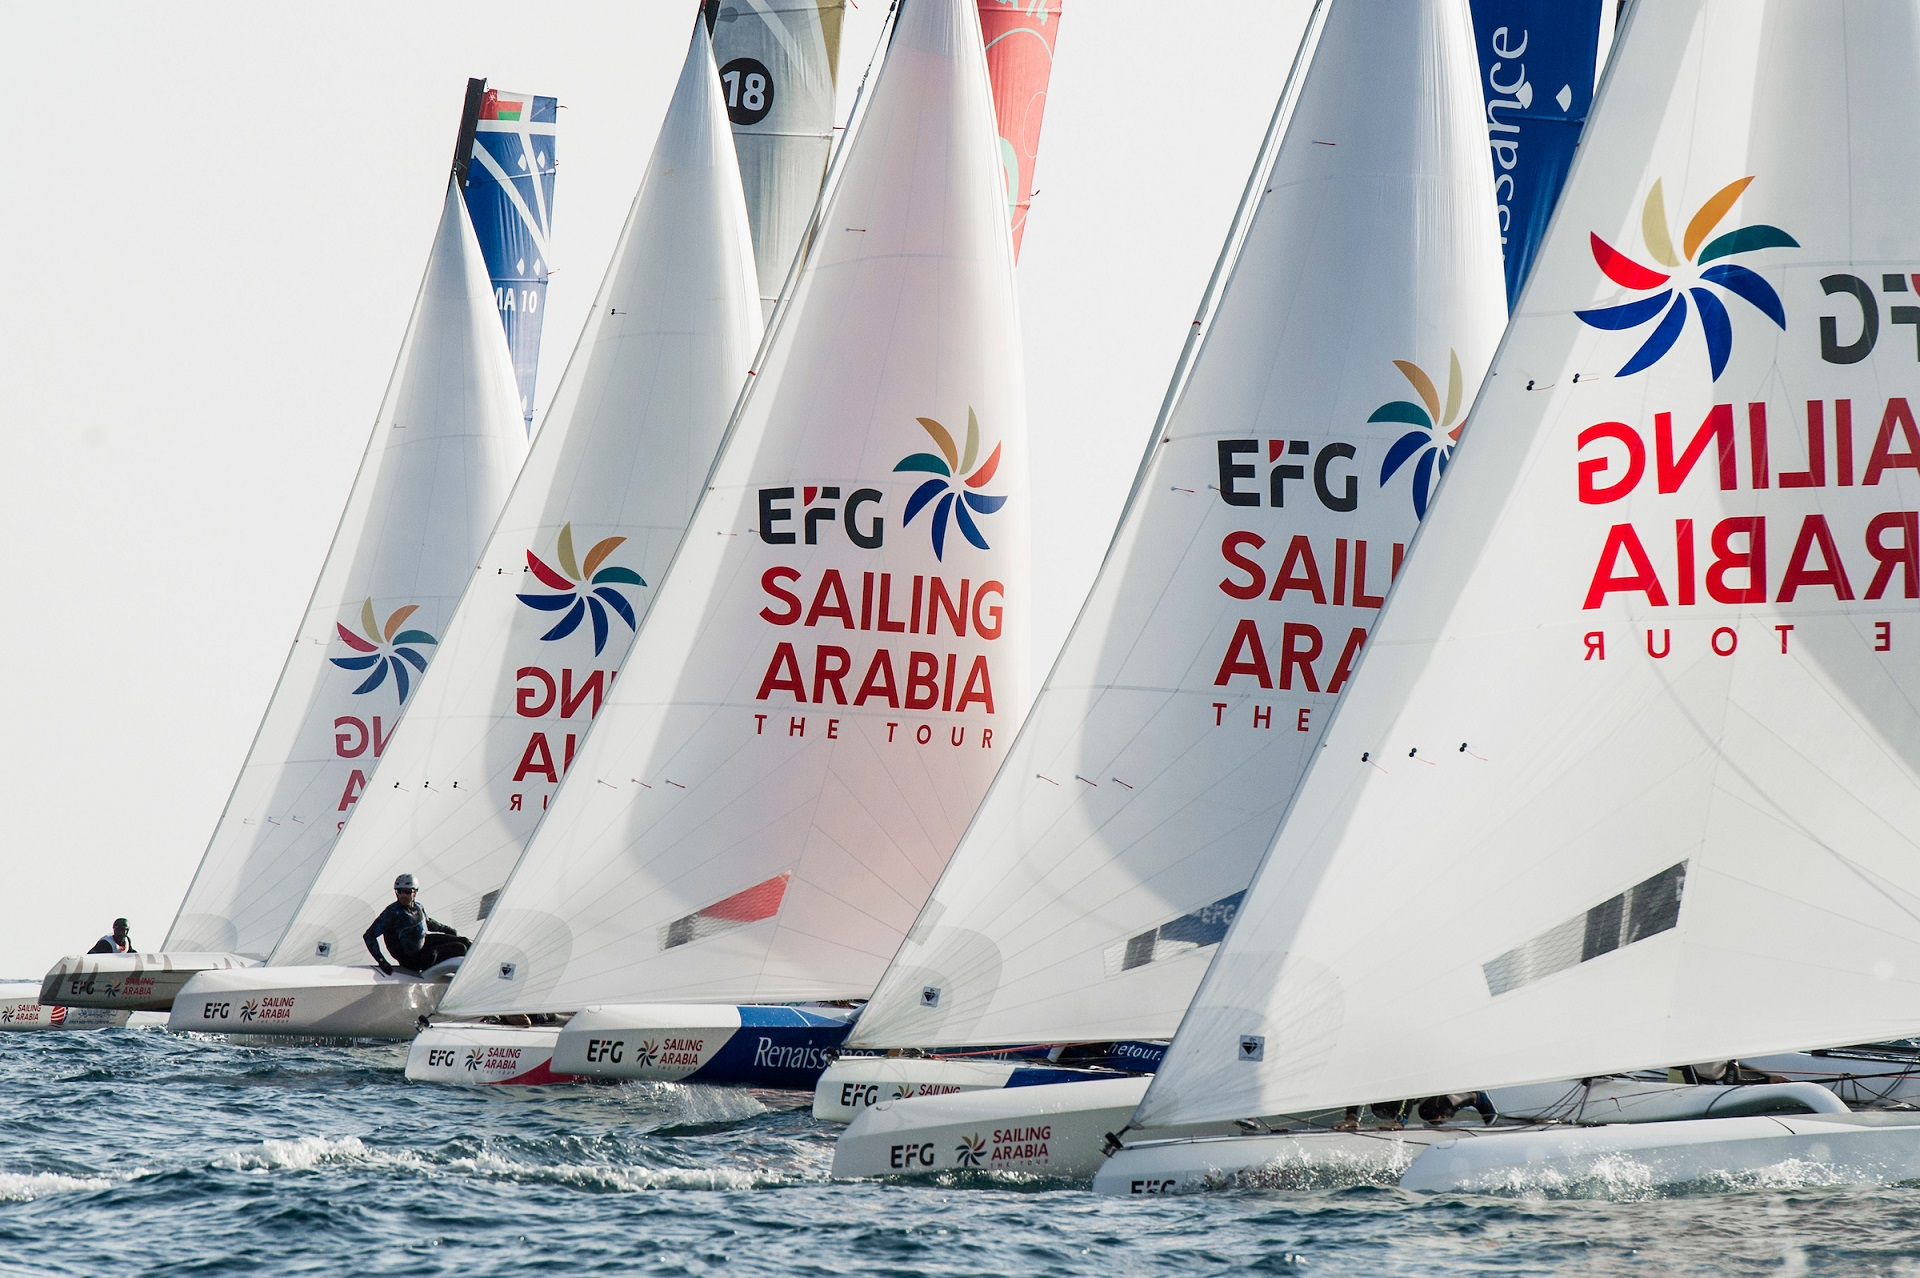 Beijaflore On The Brink Of Victory Ahead Of Efg Sailing Arabia The Tour S Finale Sailing Arabia The Tour